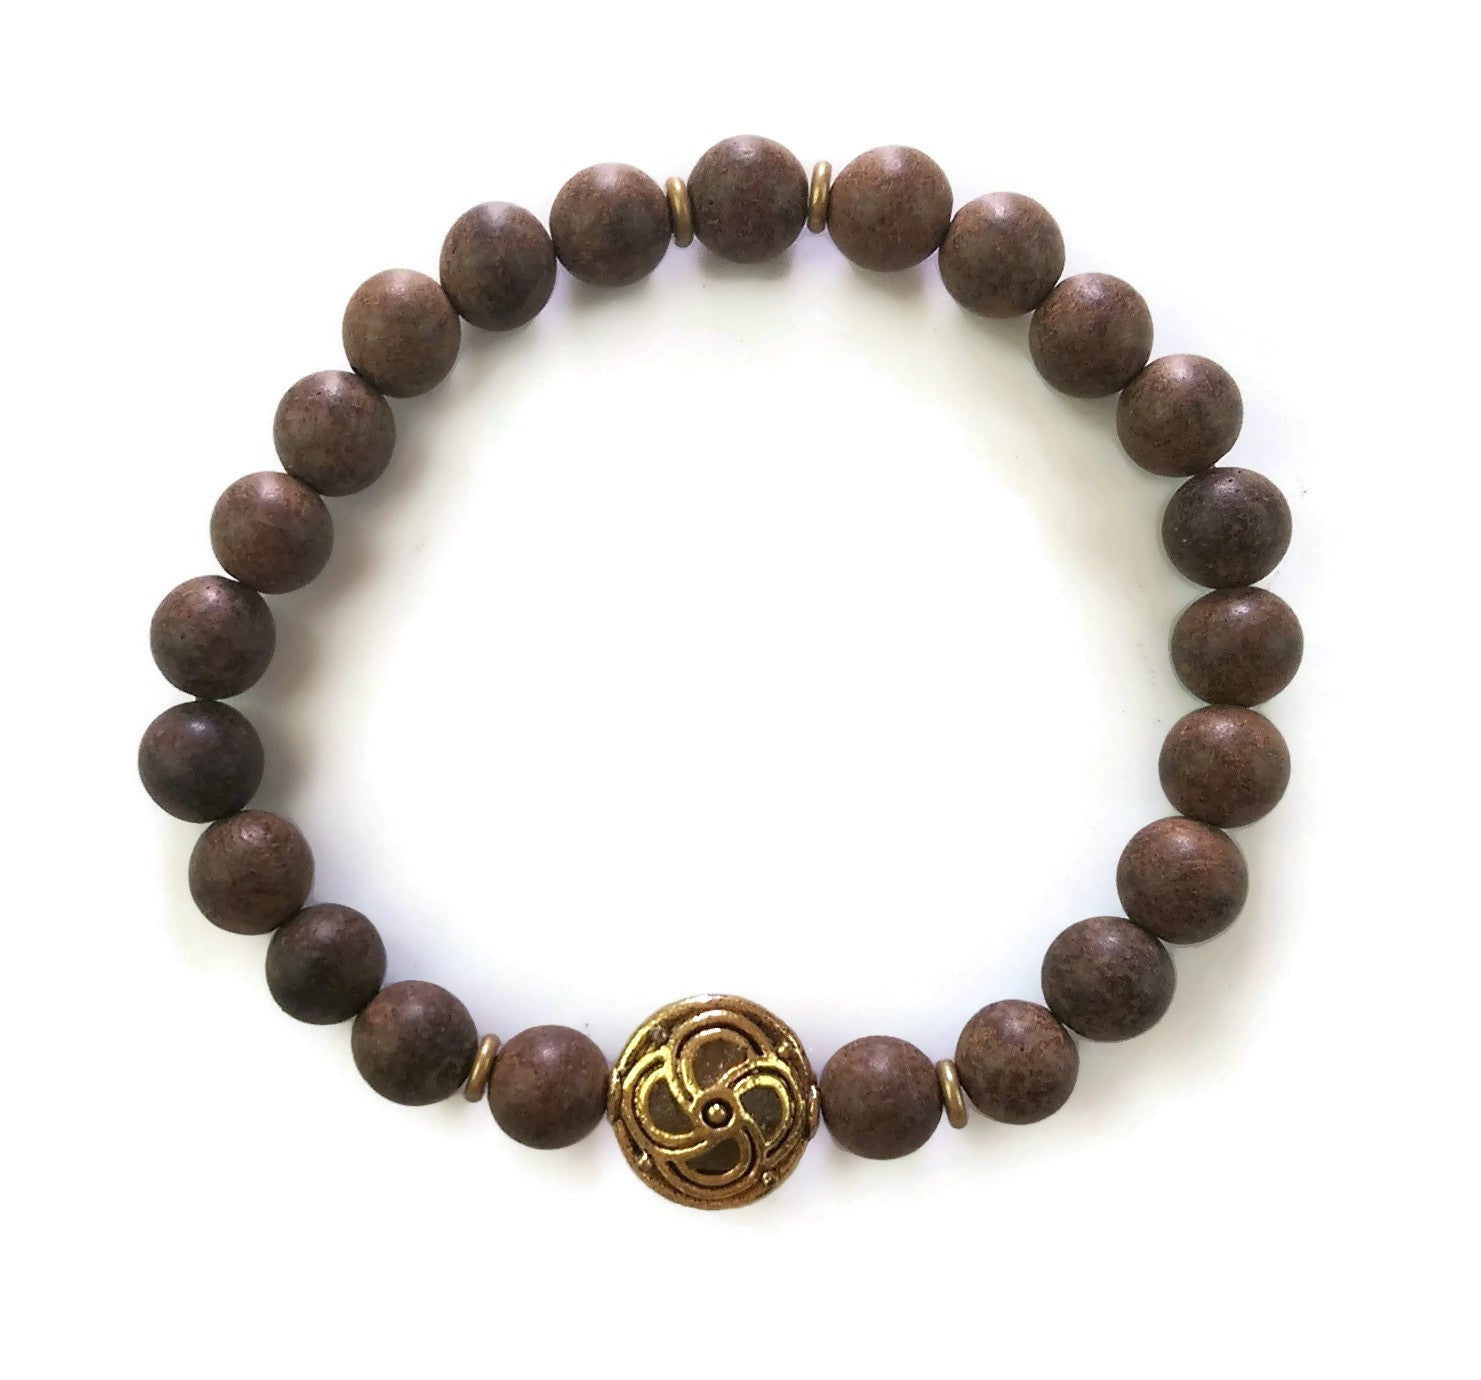 Nepal Chakra Collection 8mm Brown Agarwood with Brass Nepal Bead Wrist Mala Stretch Bracelet Stackable Mindful Focus Meditation Roost Chakra